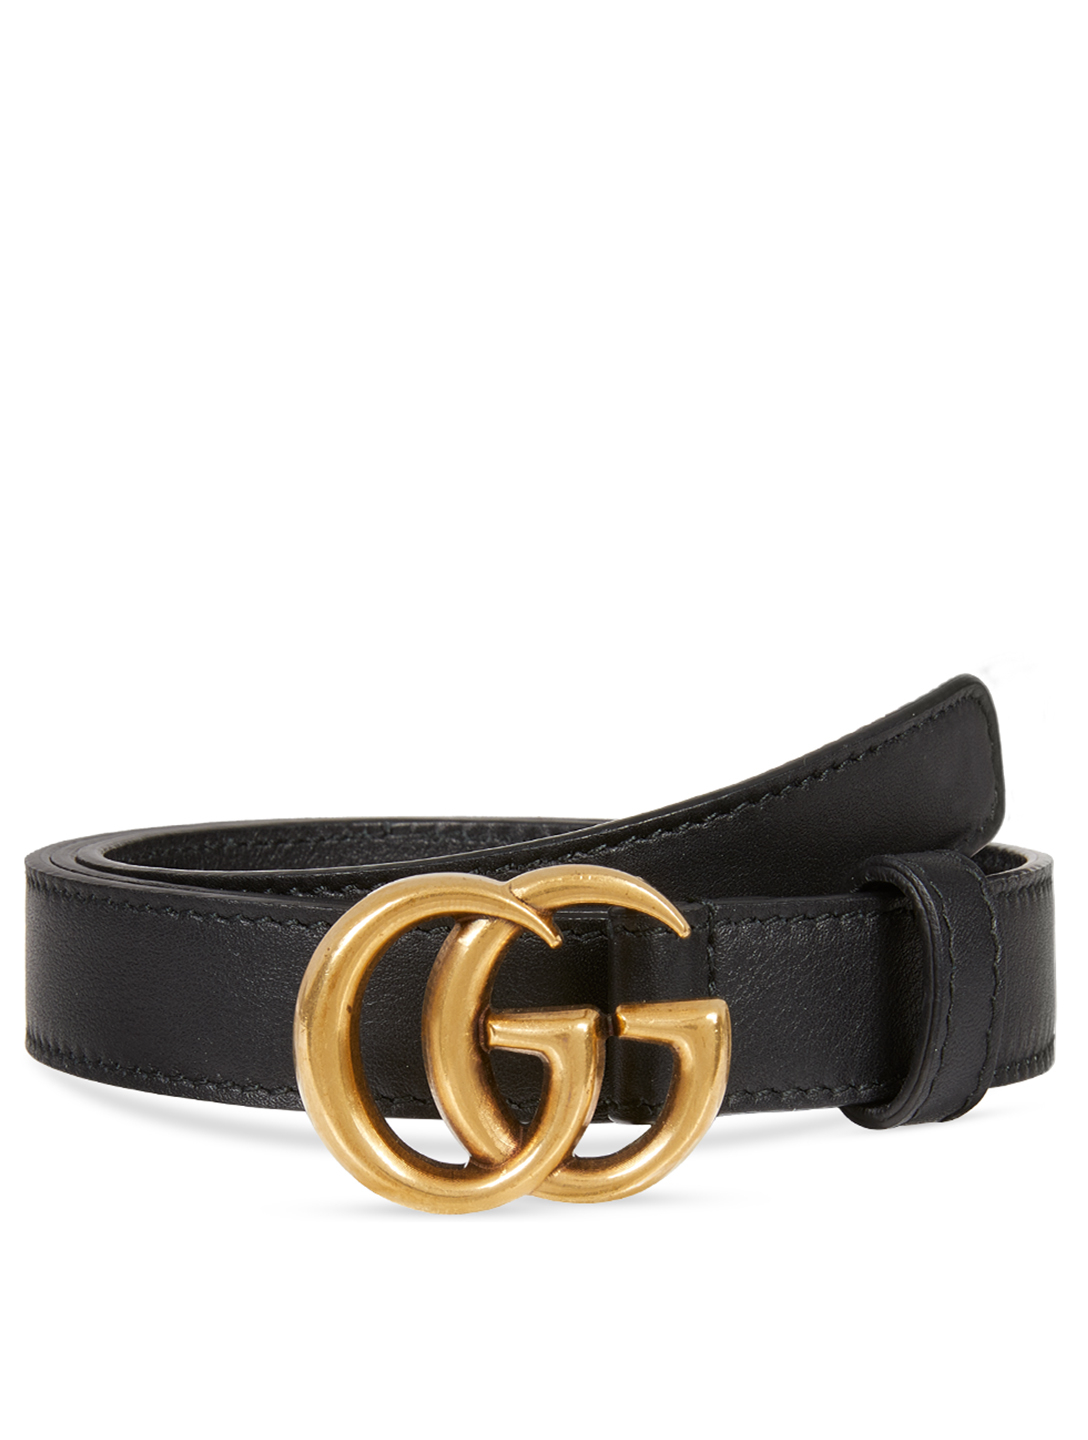 GUCCI Thin Leather Belt With Double G Buckle Women's Black